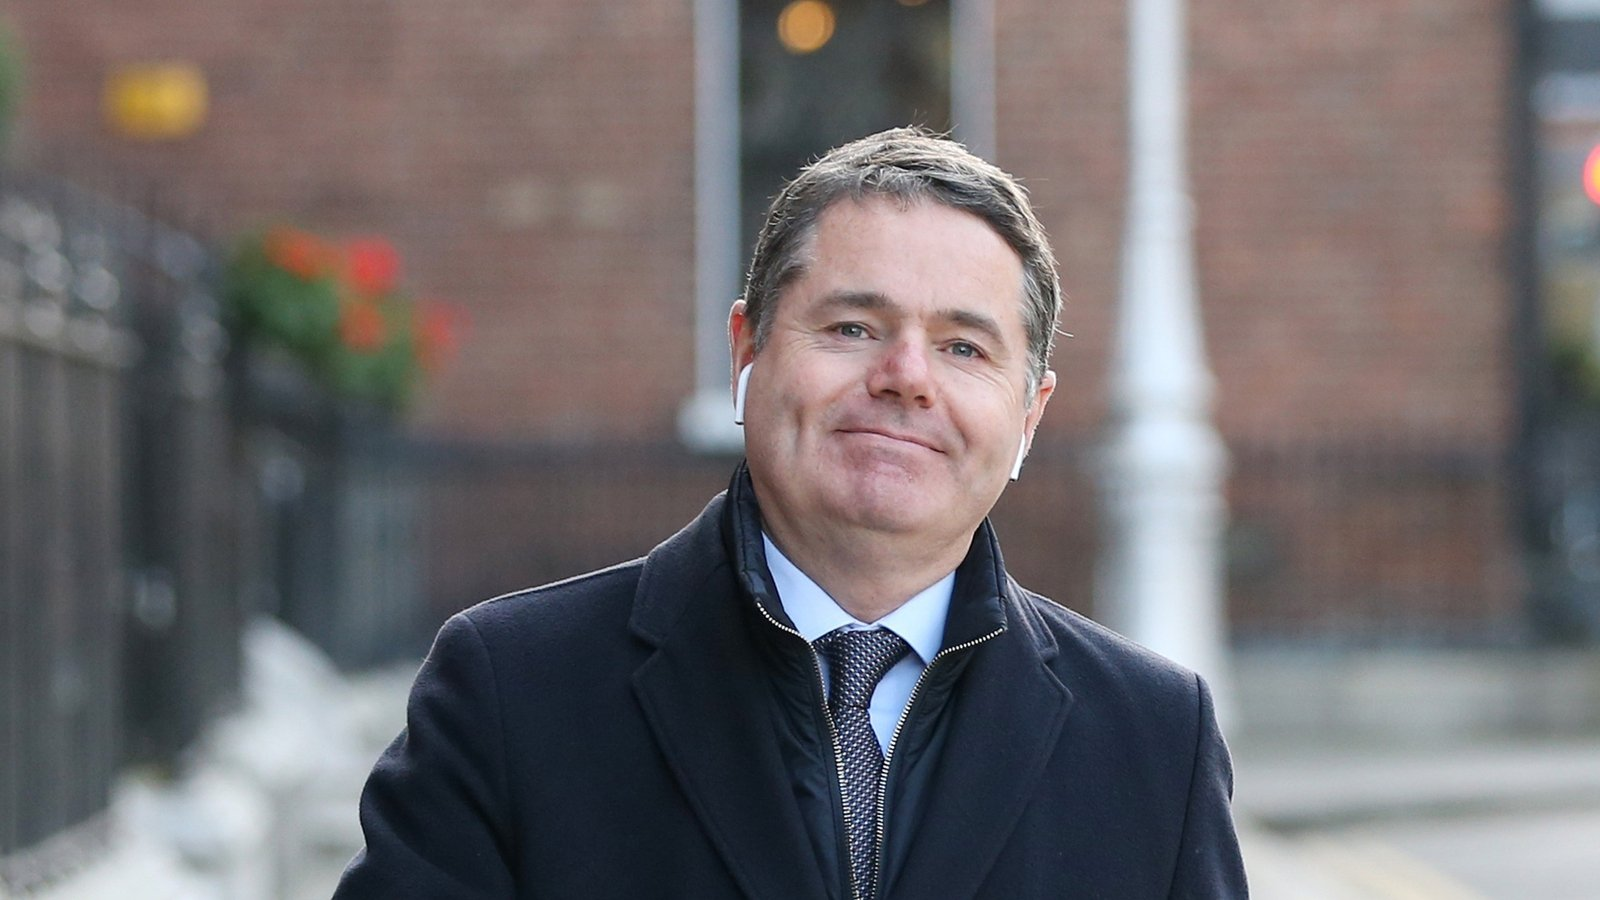 Donohoe says more must done to help first time buyers